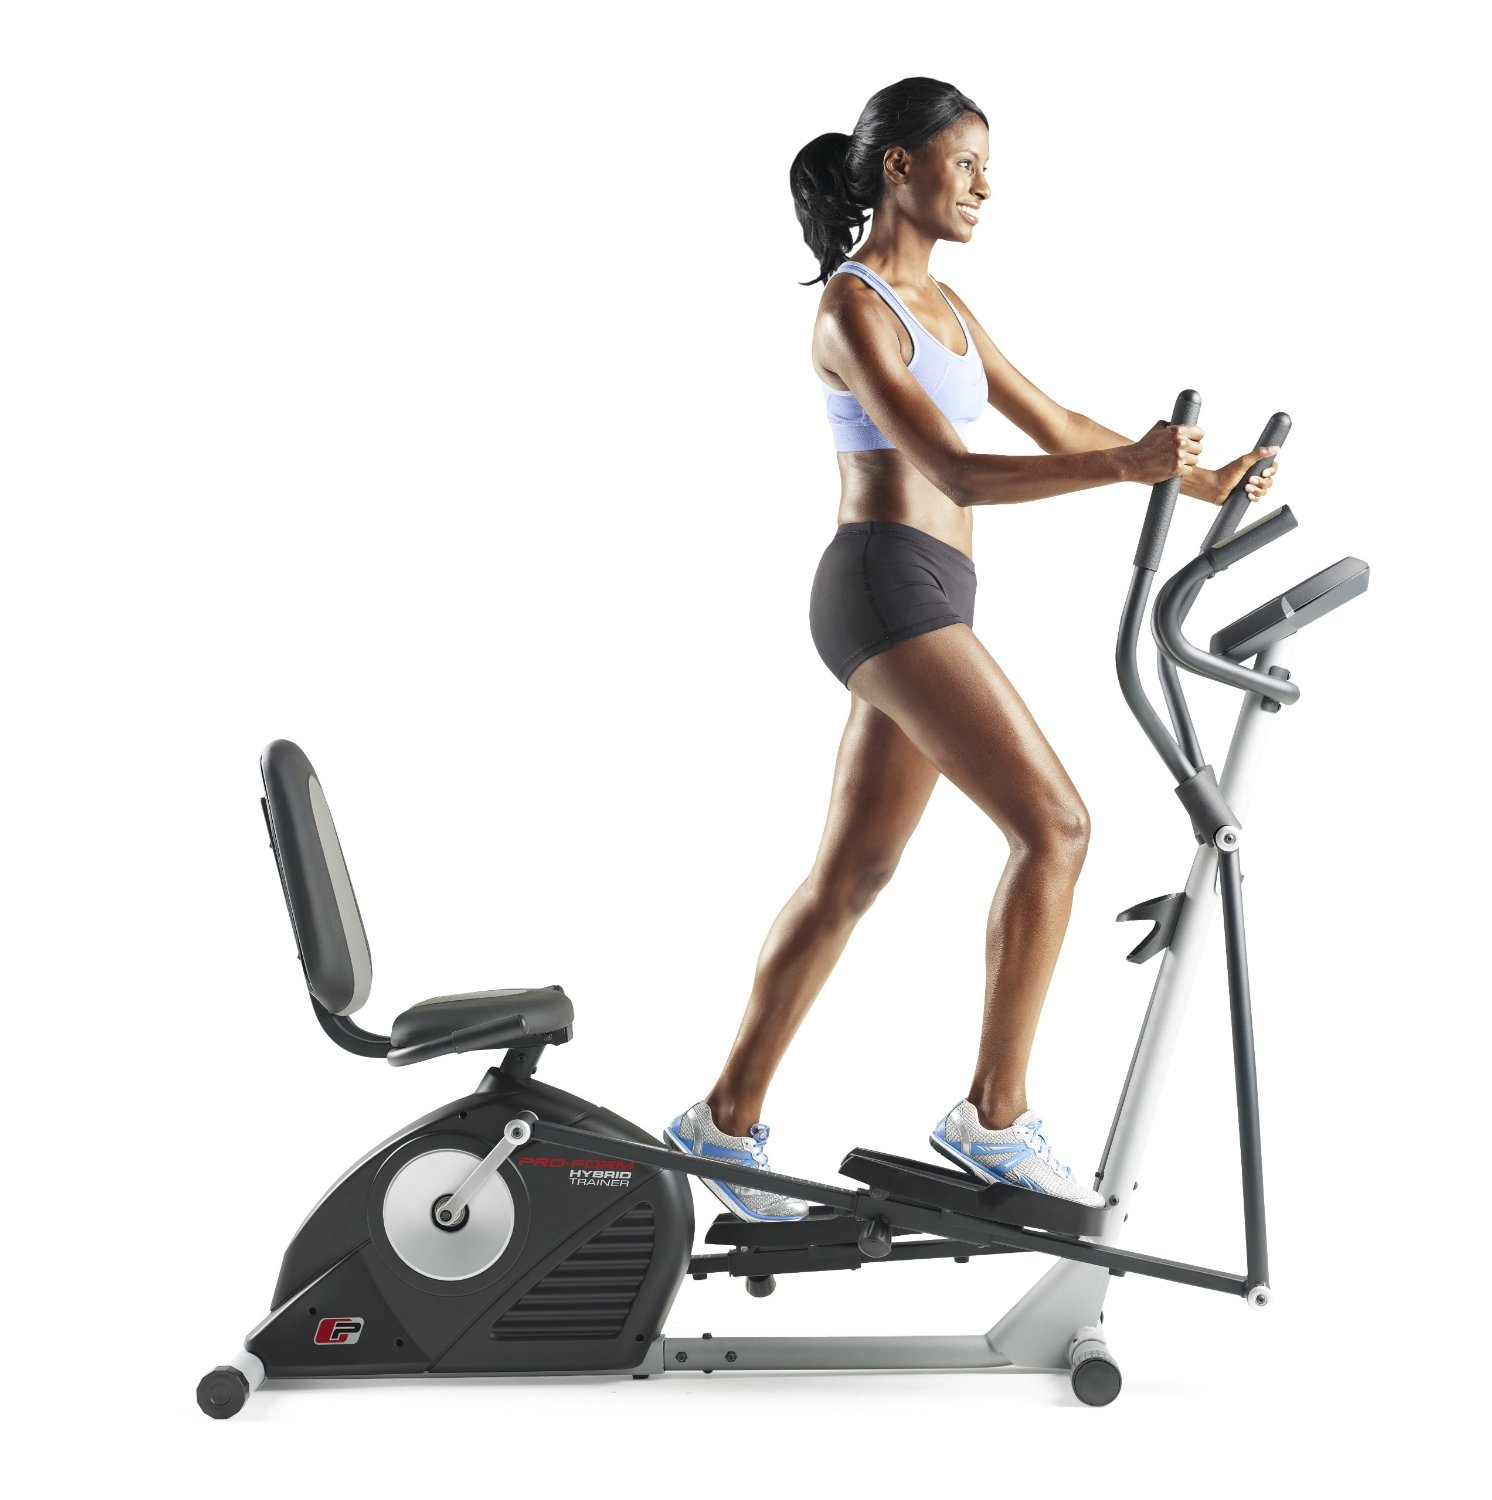 Proform Hybrid Elliptical Bike Review